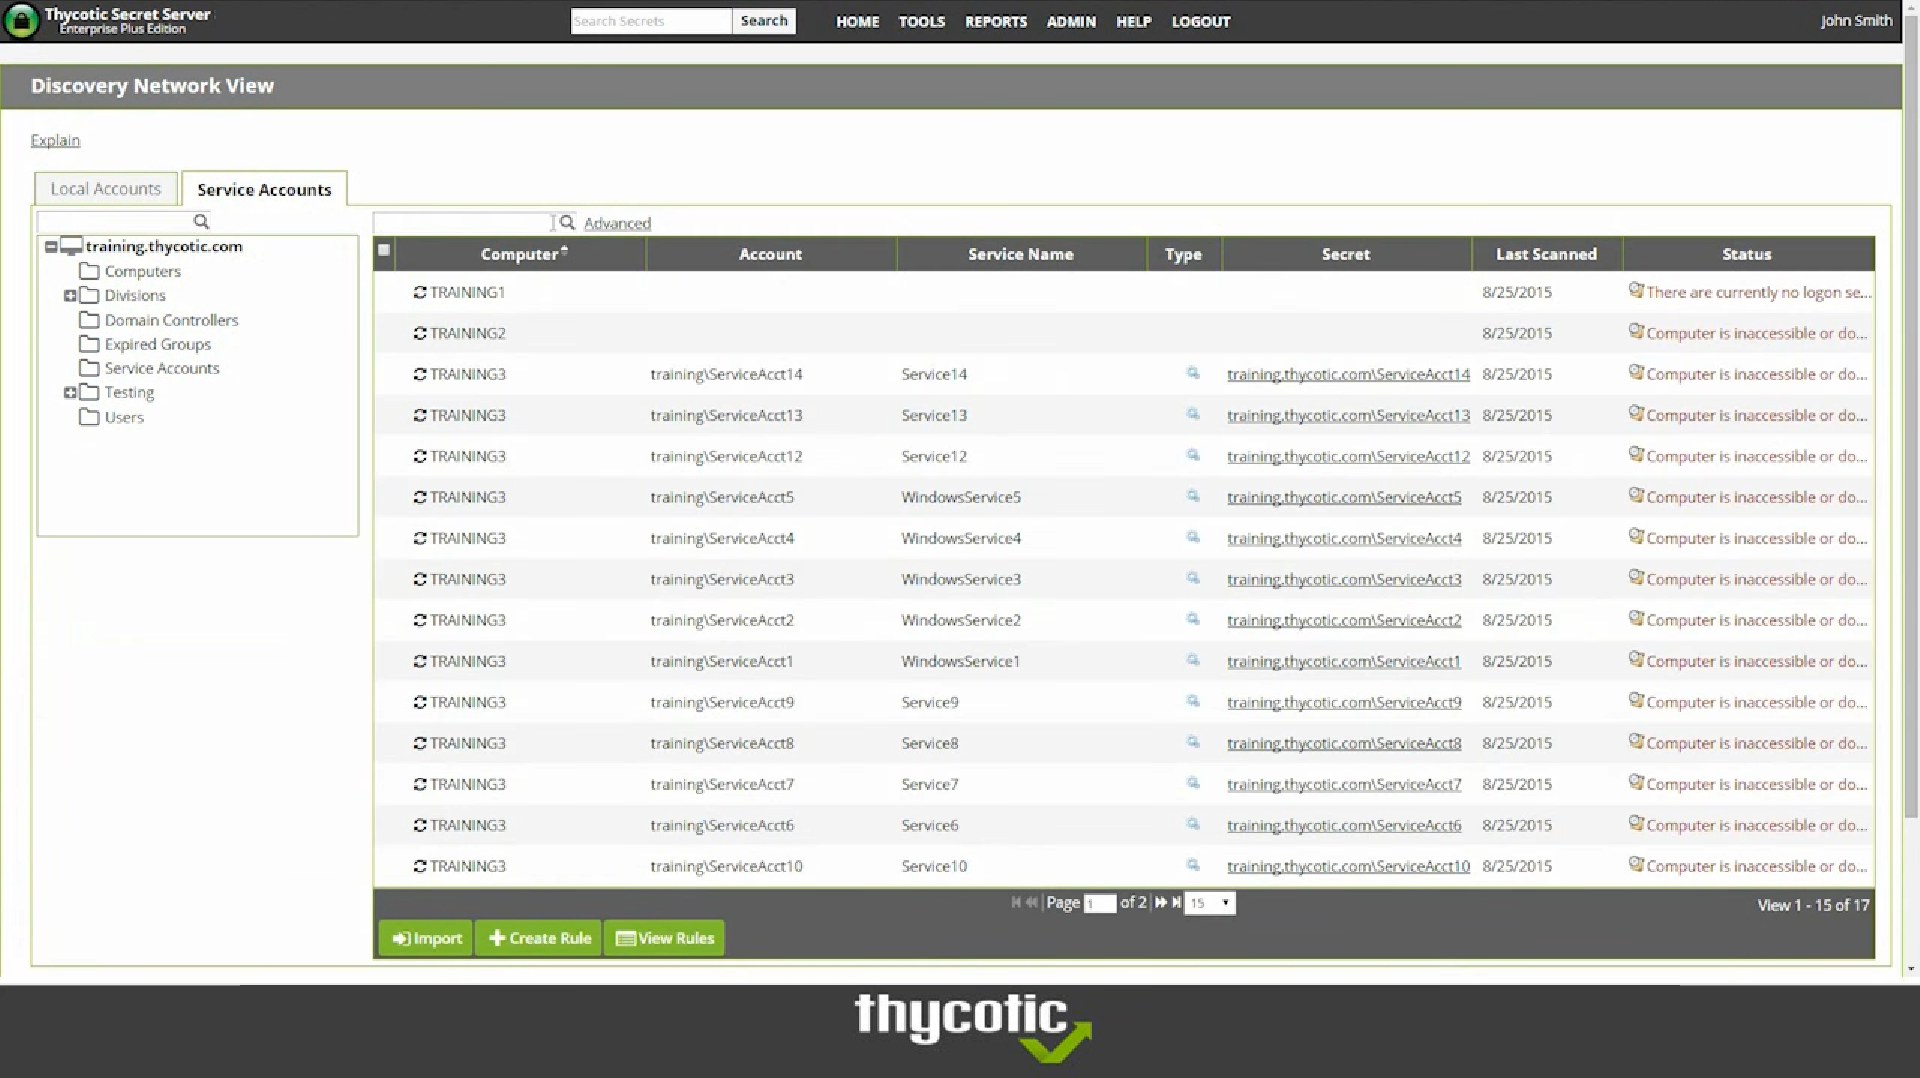 Thycotic secret server Discovery Network view